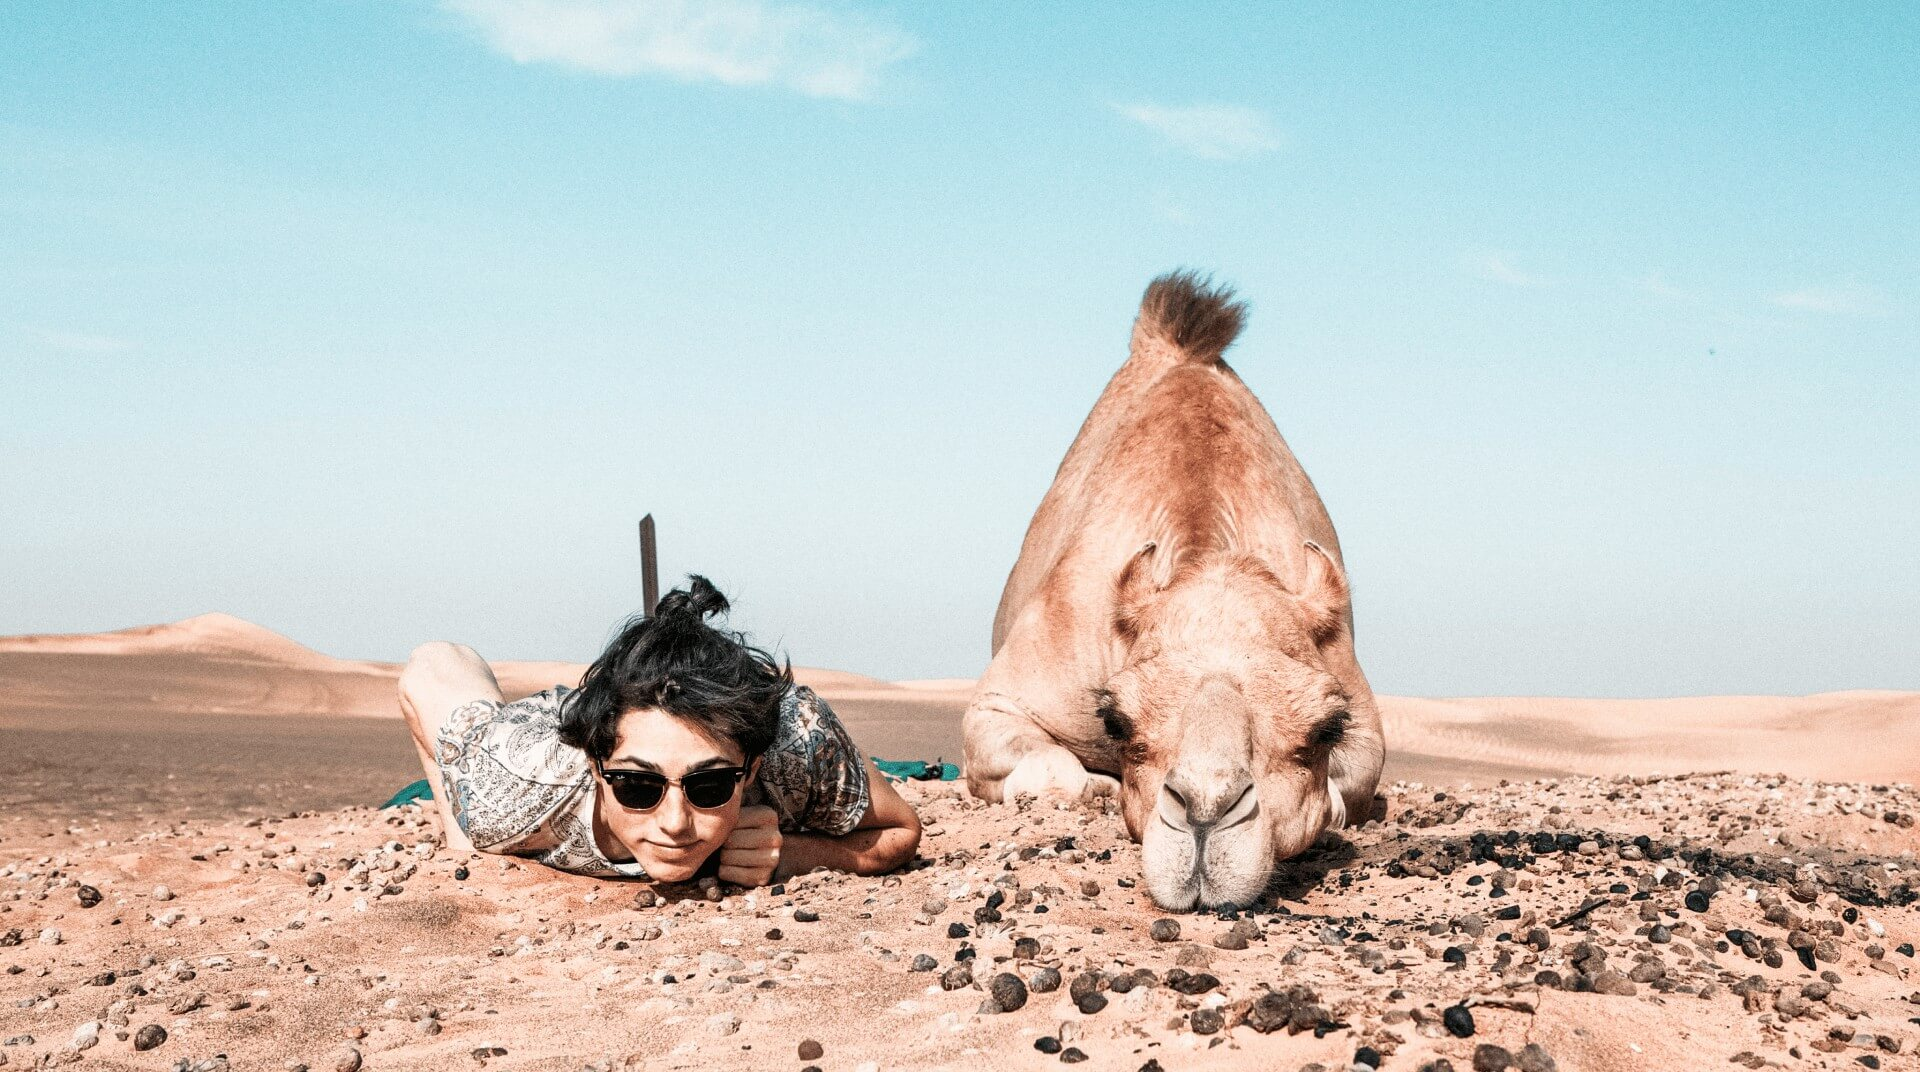 I Ask the Camel to Ride Me